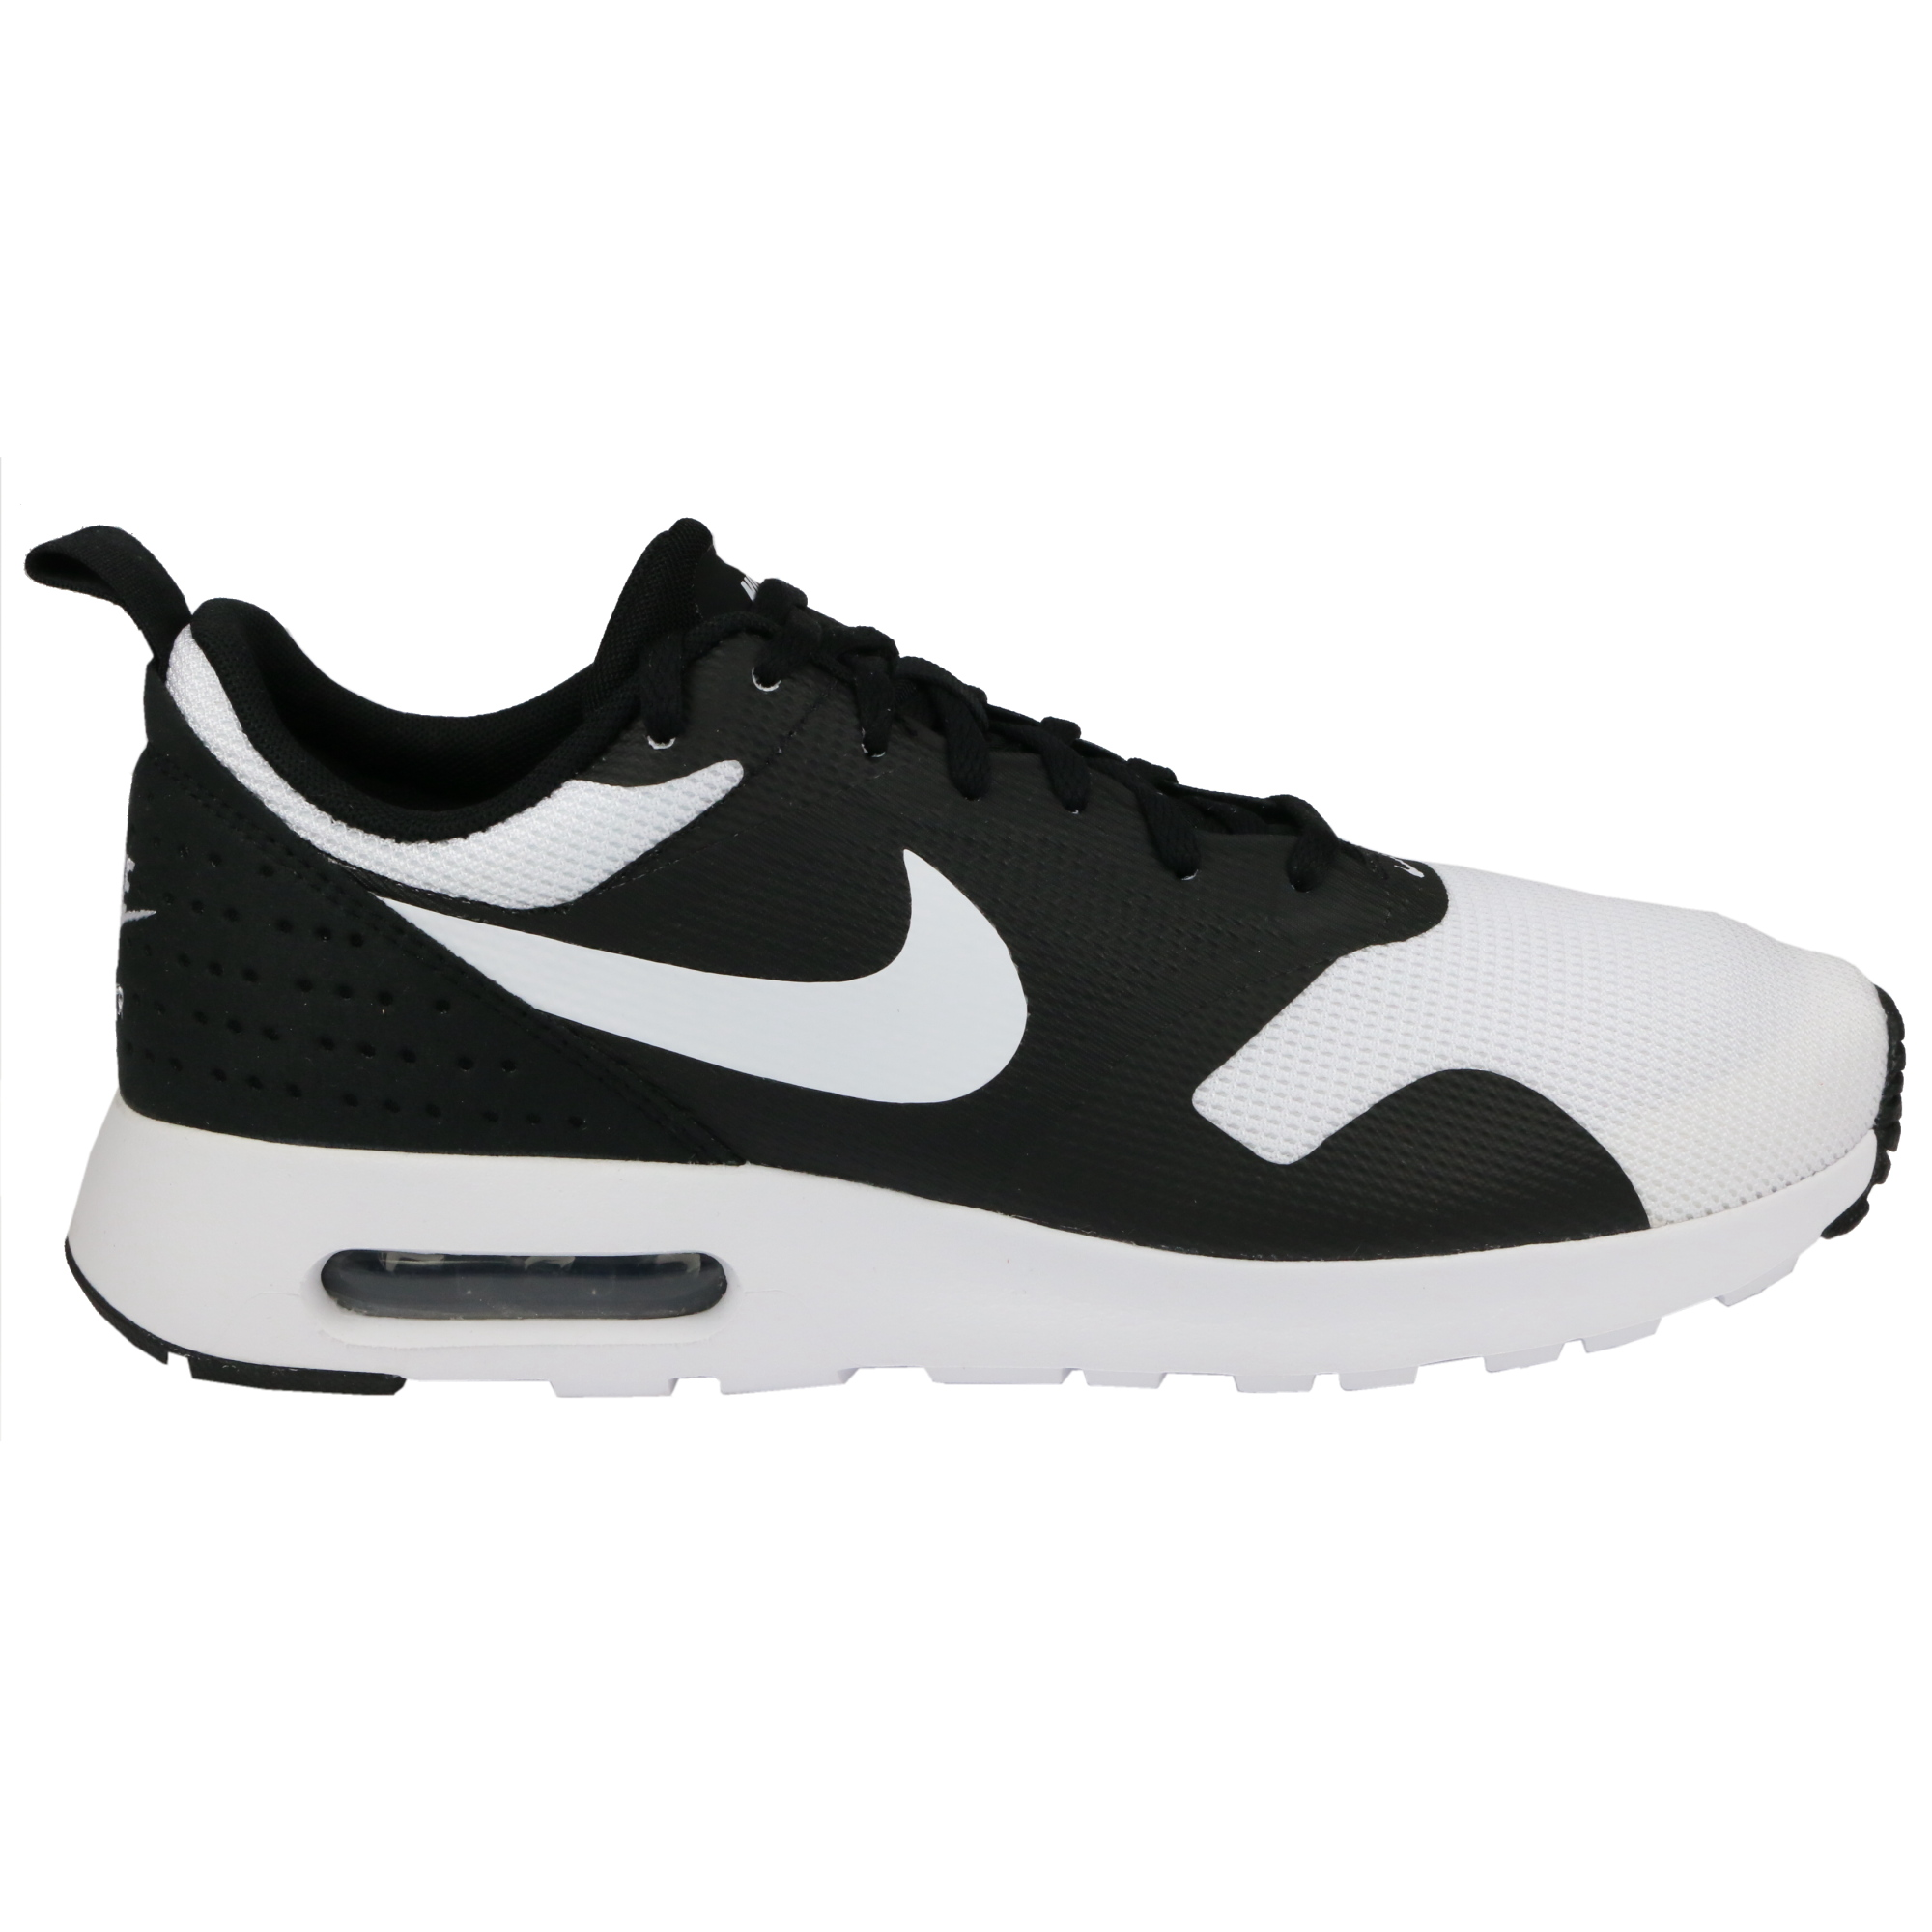 nike air max tavas essential shoes trainers sneakers men 39 s. Black Bedroom Furniture Sets. Home Design Ideas